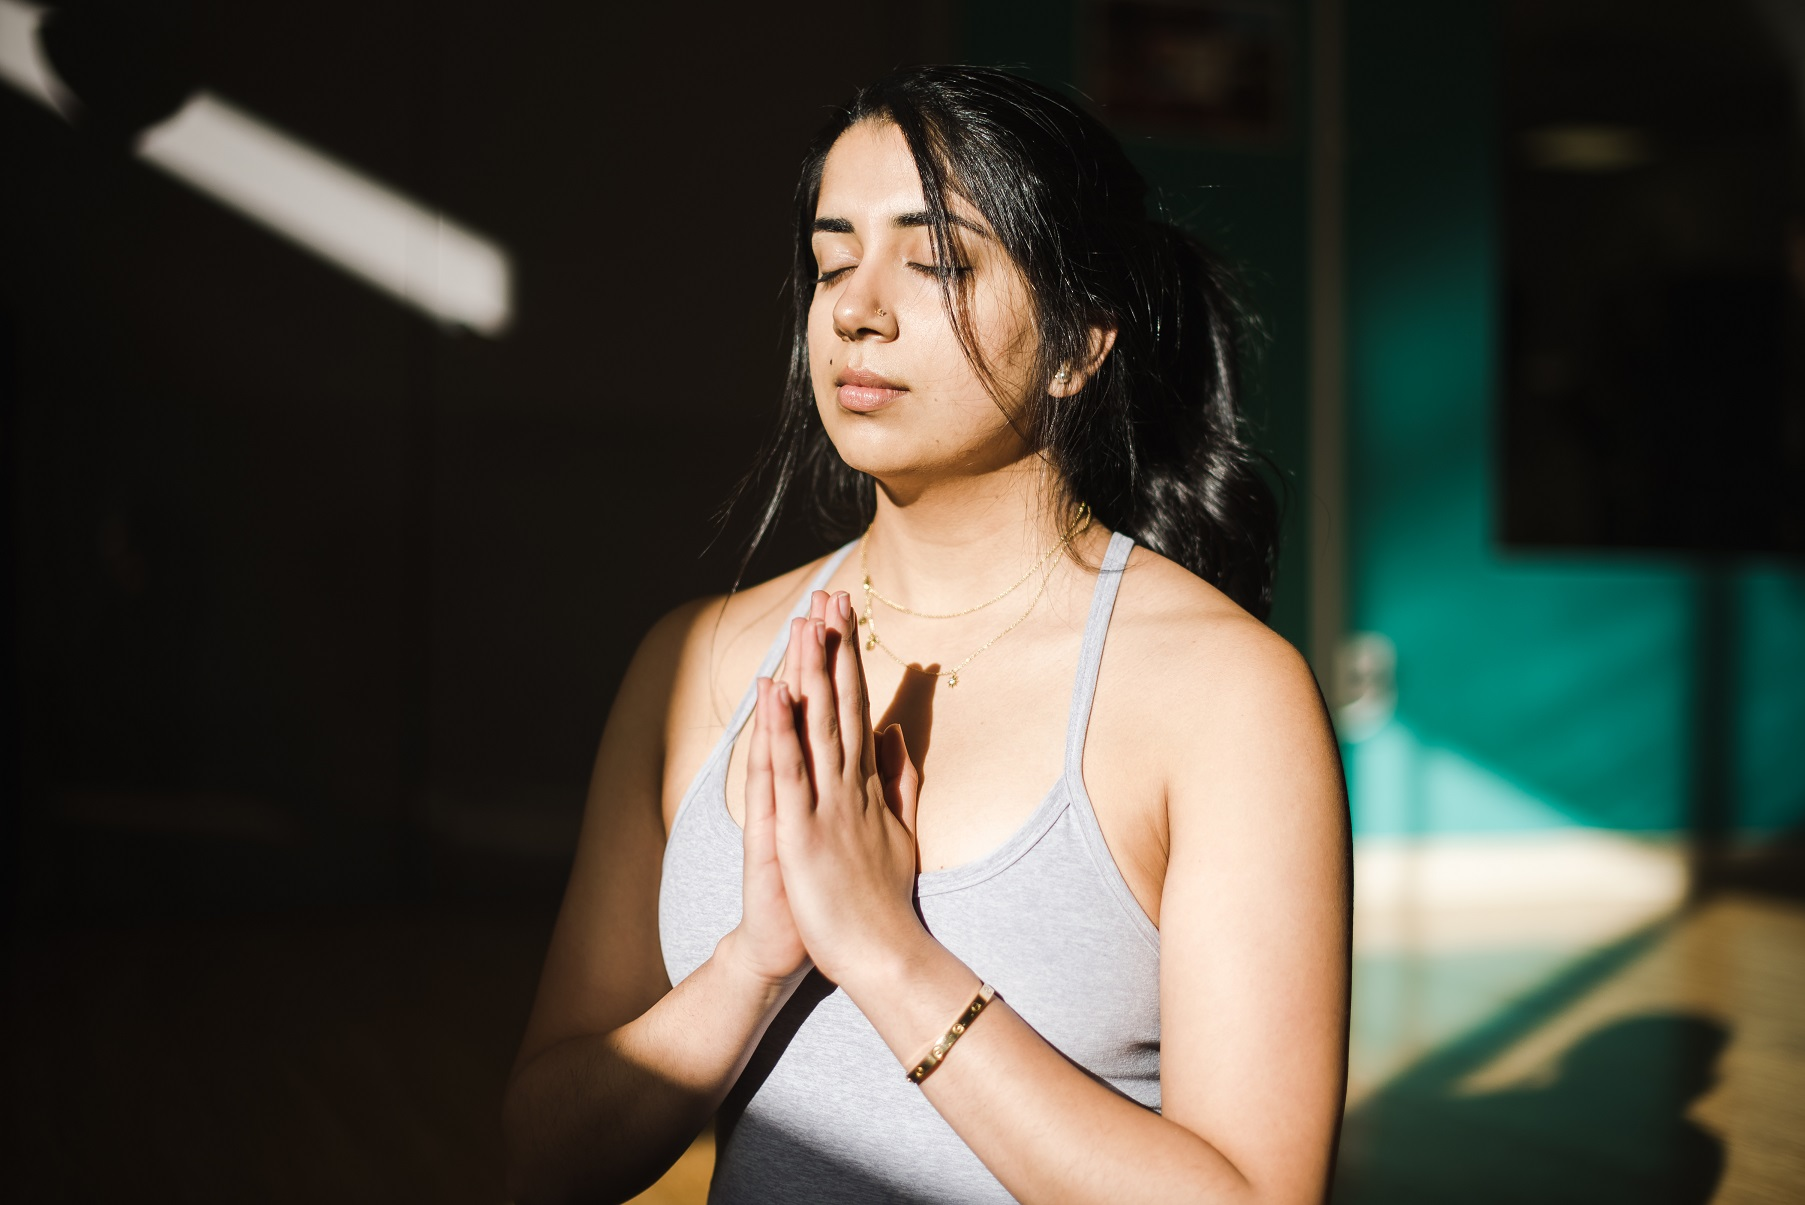 girl meditating finding ways to ease anxiety in stressful times